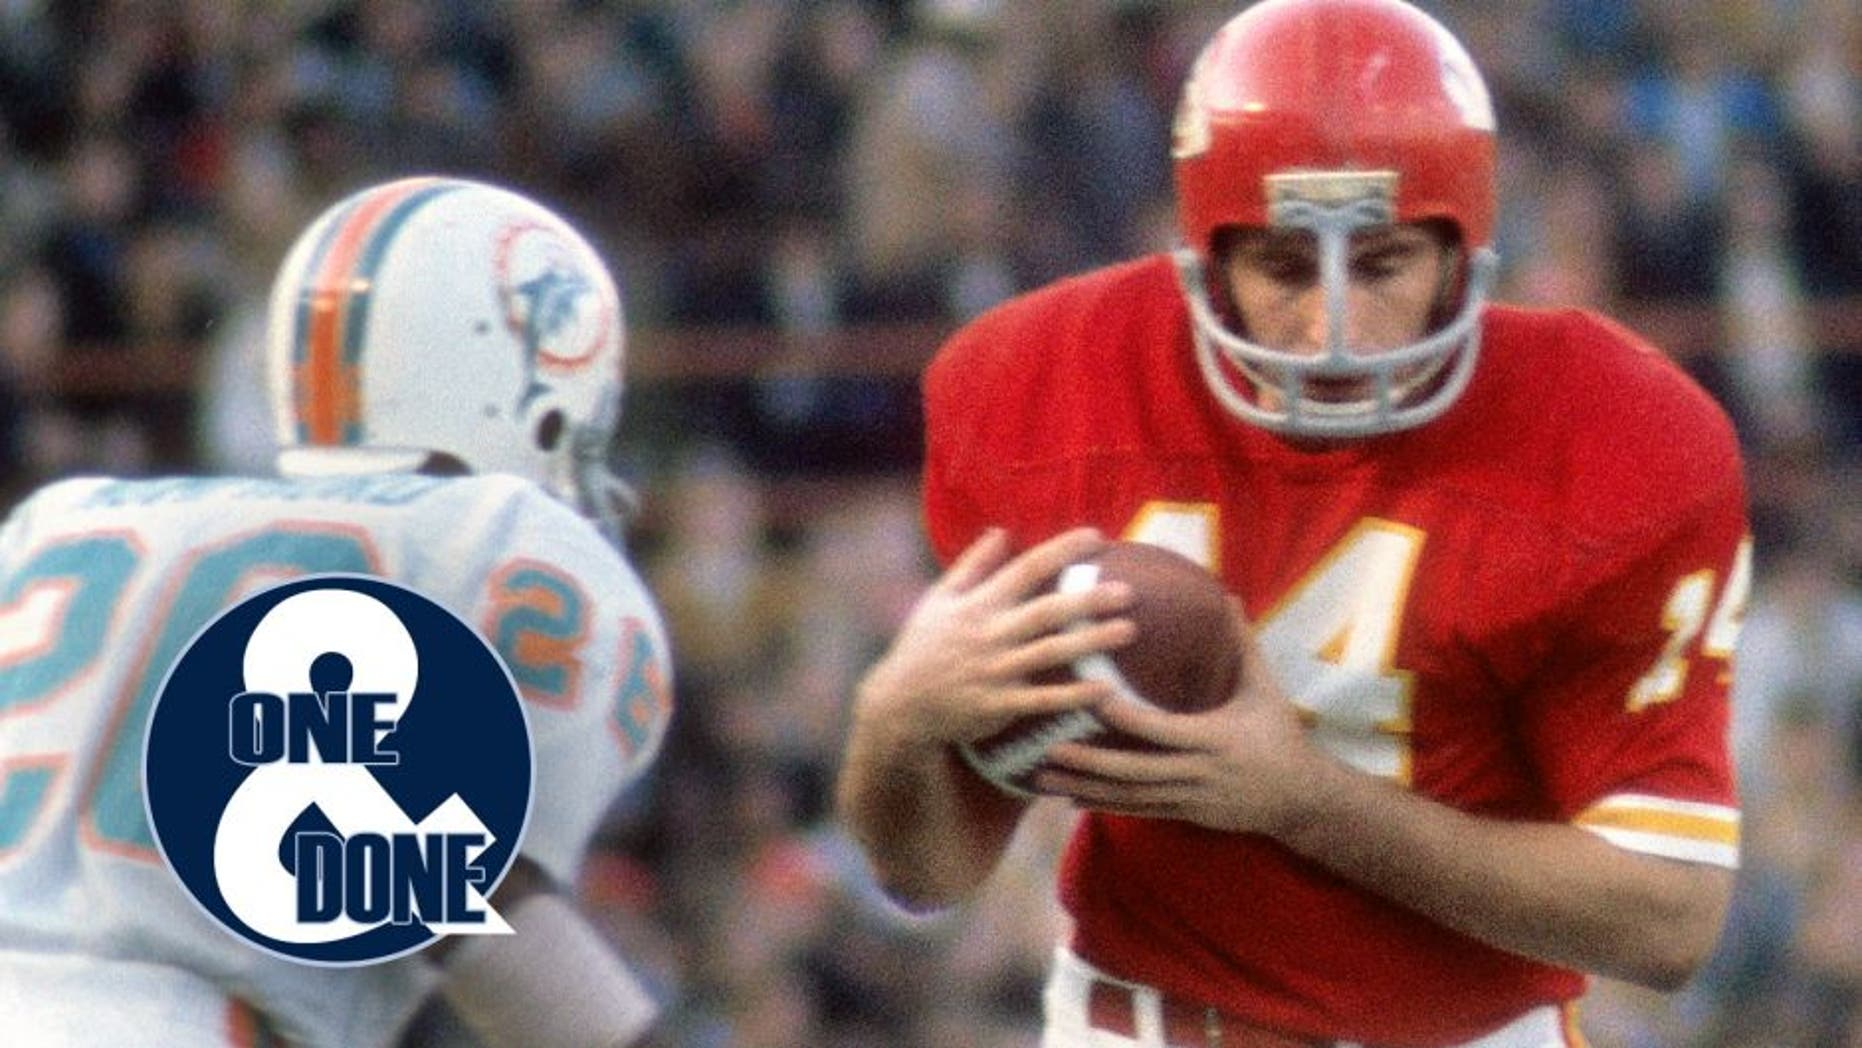 KANSAS CITY, MO - CIRCA 1972: Running Back Ed Podolak #14 of the Kansas City Chiefs running with the ball looks to get pass defensive back Lloyd Mumphord #26 of the Miami Dolphins during an NFL football game at Arrowhead Stadium in Kansas City, Missouri. Podolak played for the Chiefs from 1969-77. (Photo by Focus on Sport/Getty Images)